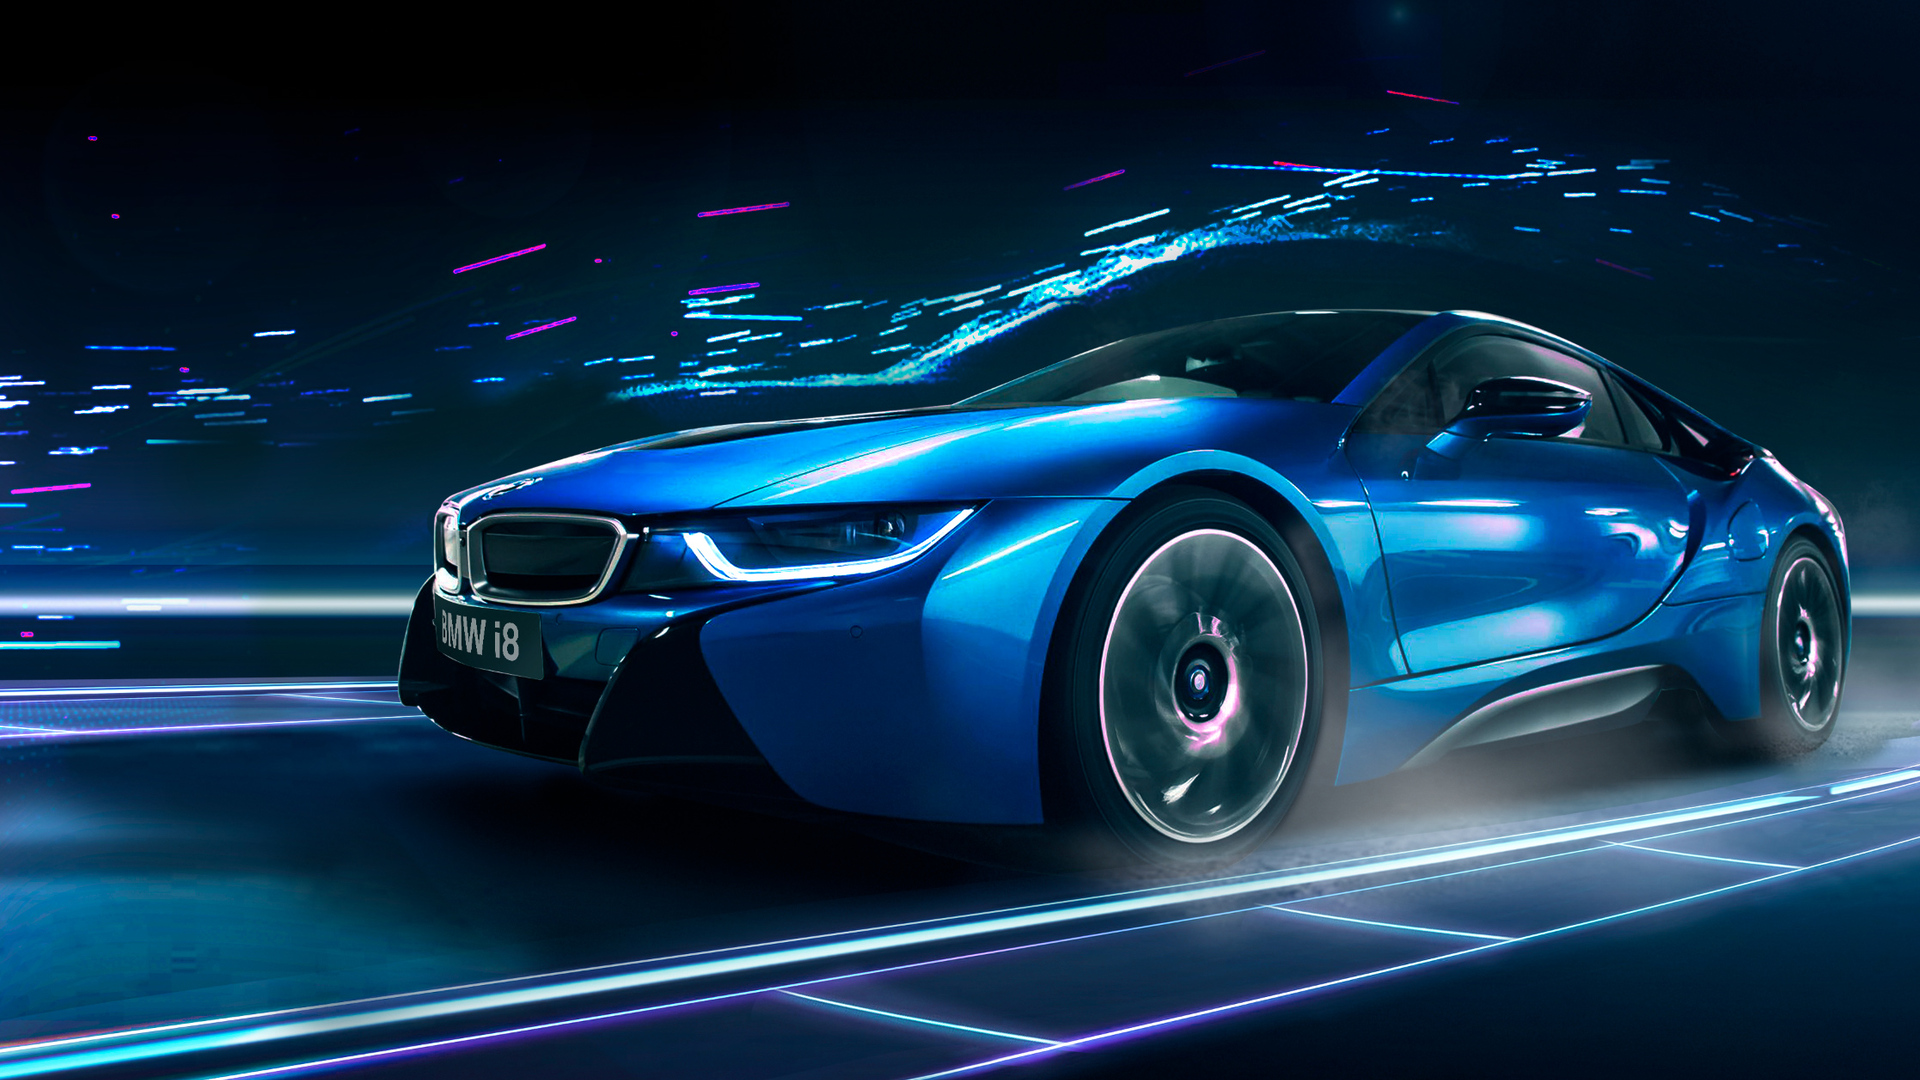 1920x1080 Bmw I8 Car Laptop Full Hd 1080p Hd 4k Wallpapers Images Backgrounds Photos And Pictures